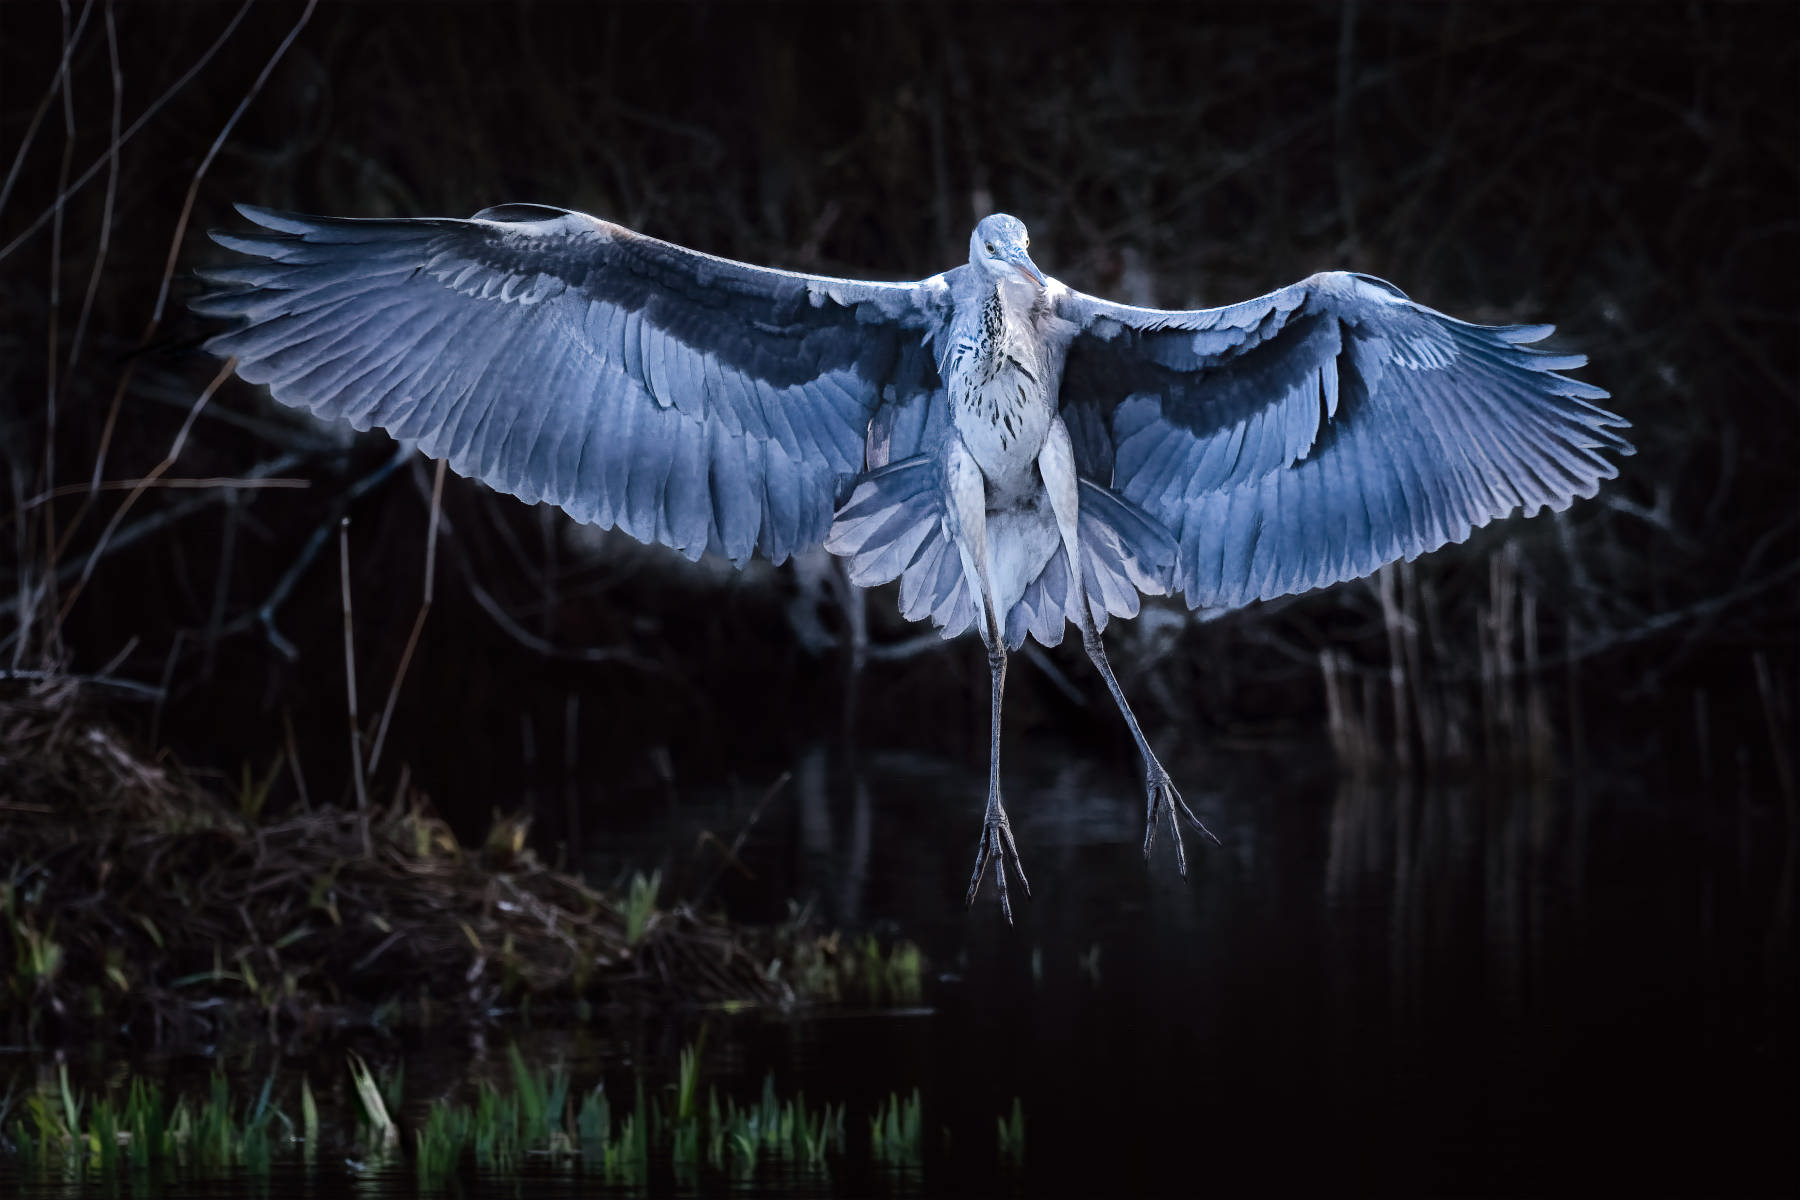 grey heron landing in the appearance of a spectre